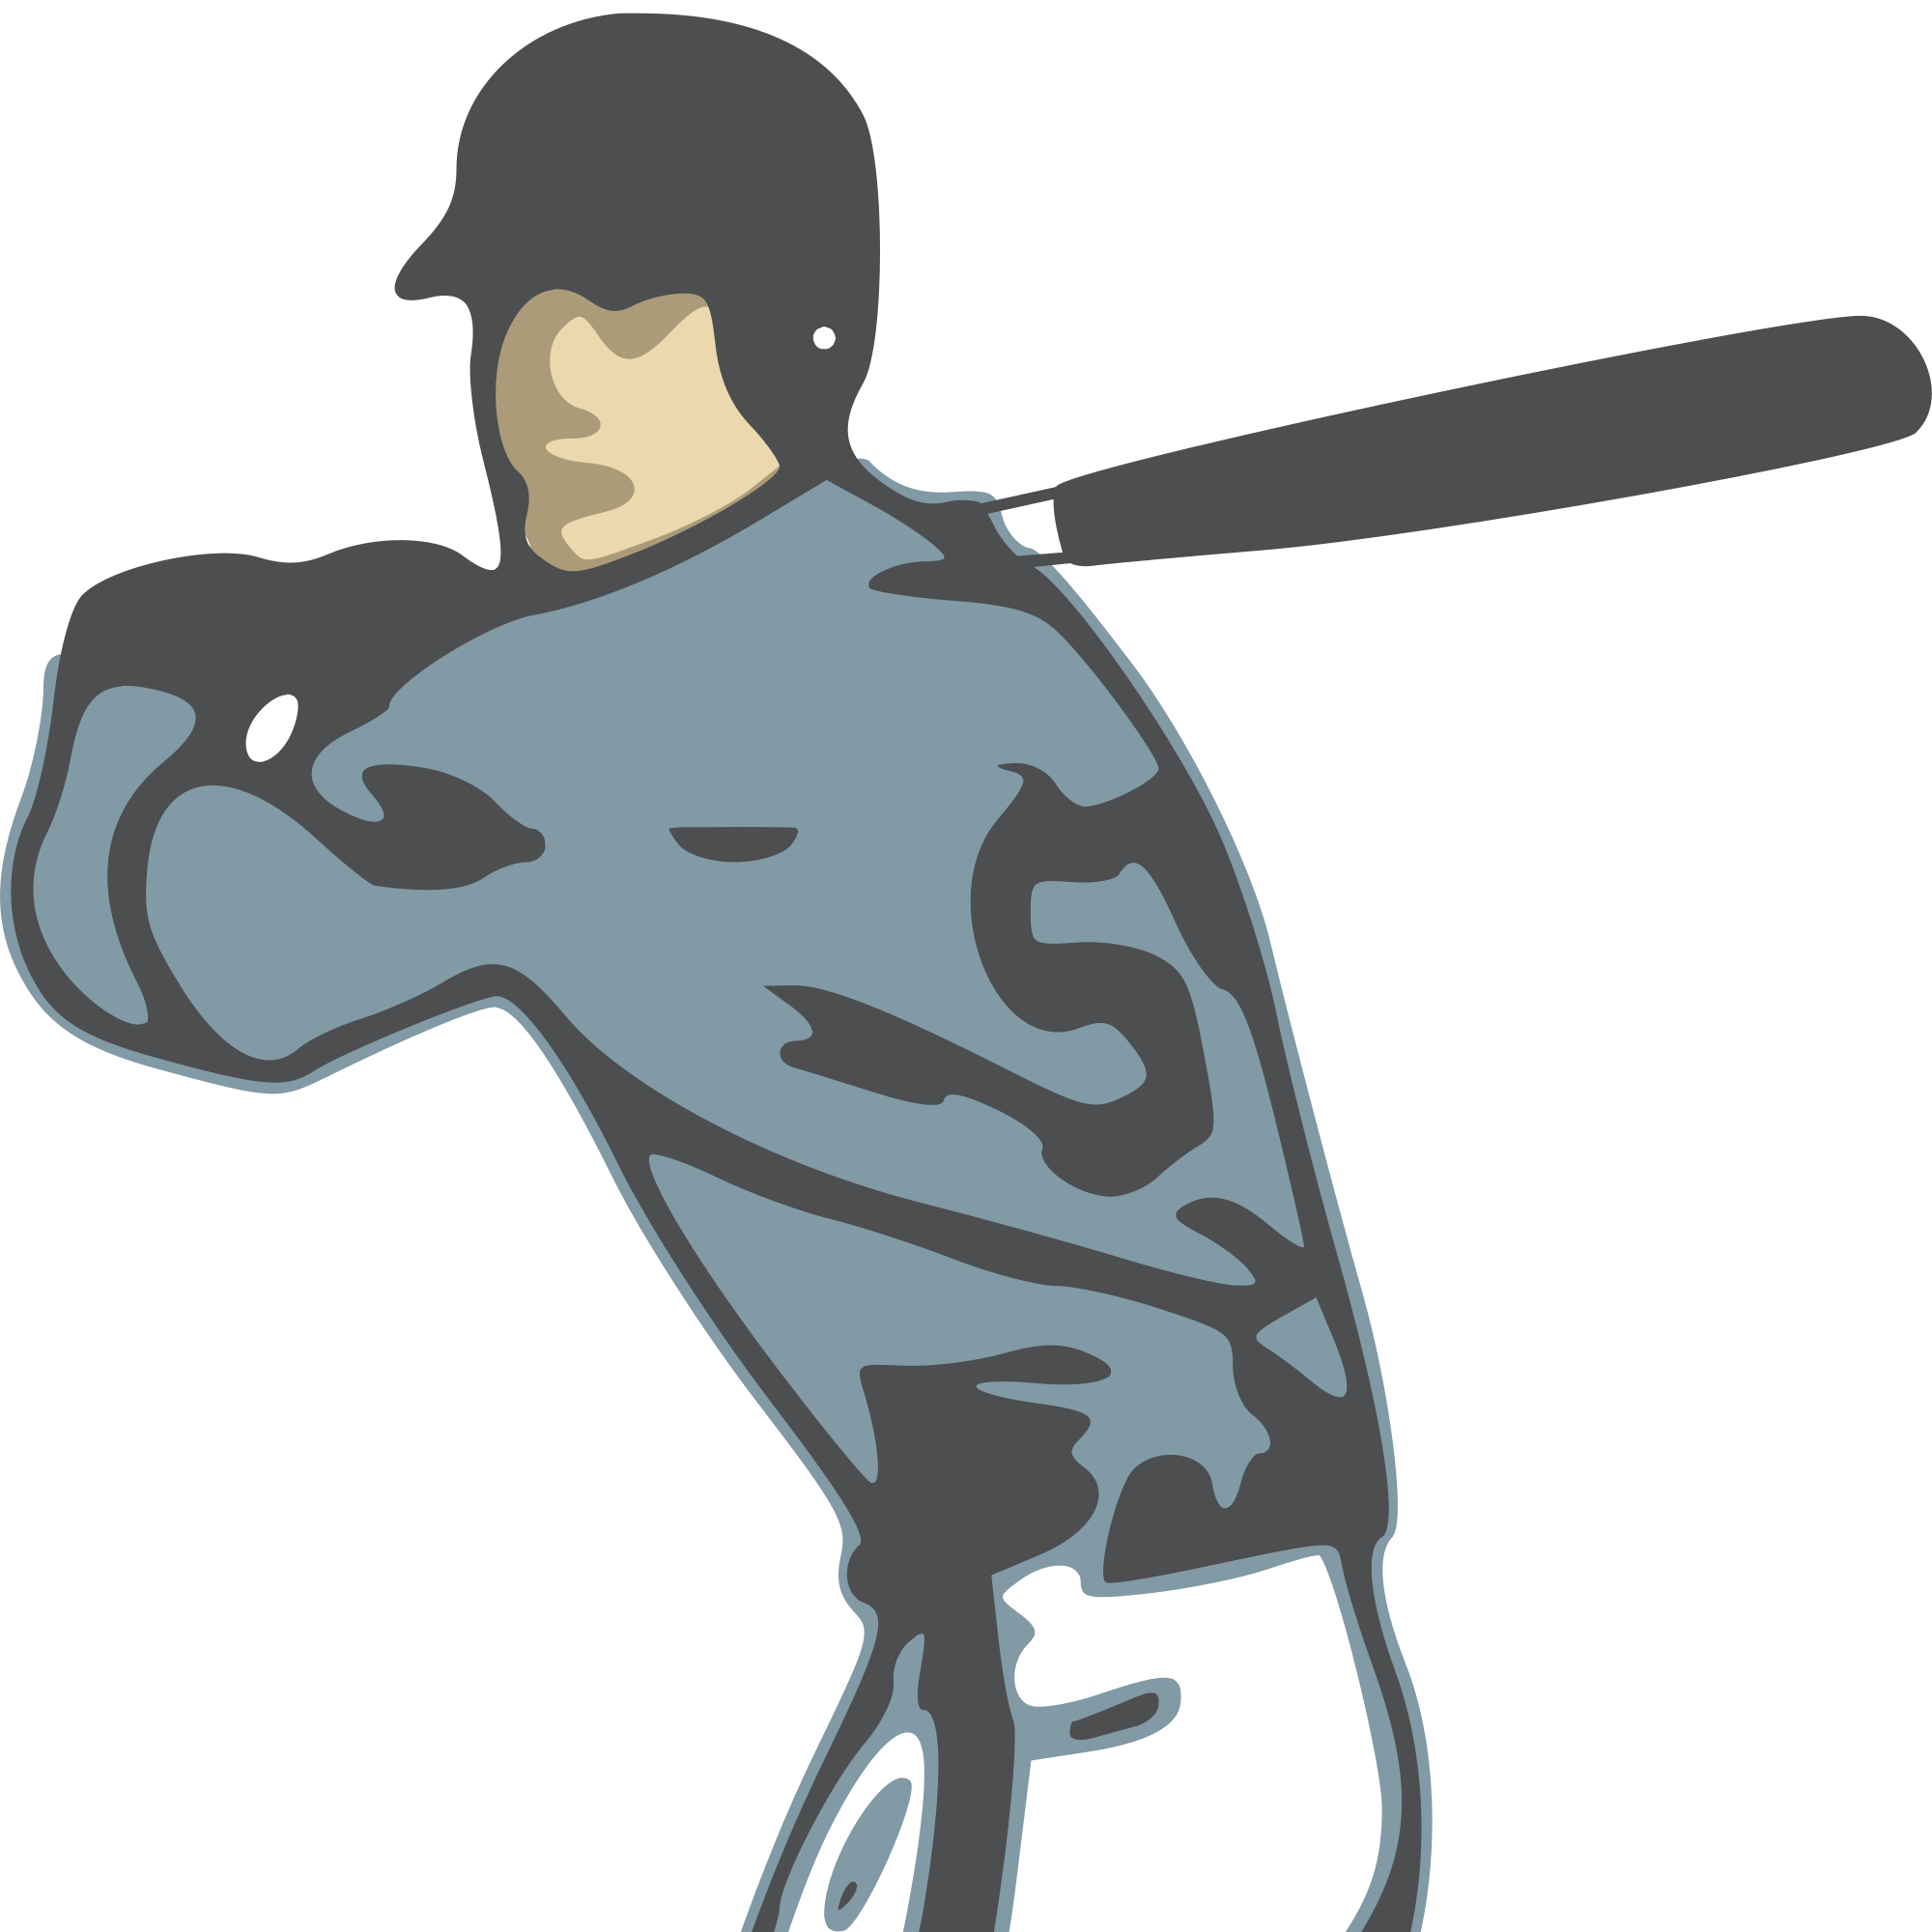 Baseball clipart catch svg transparent library Baseball Batter Clipart at GetDrawings.com | Free for personal use ... svg transparent library